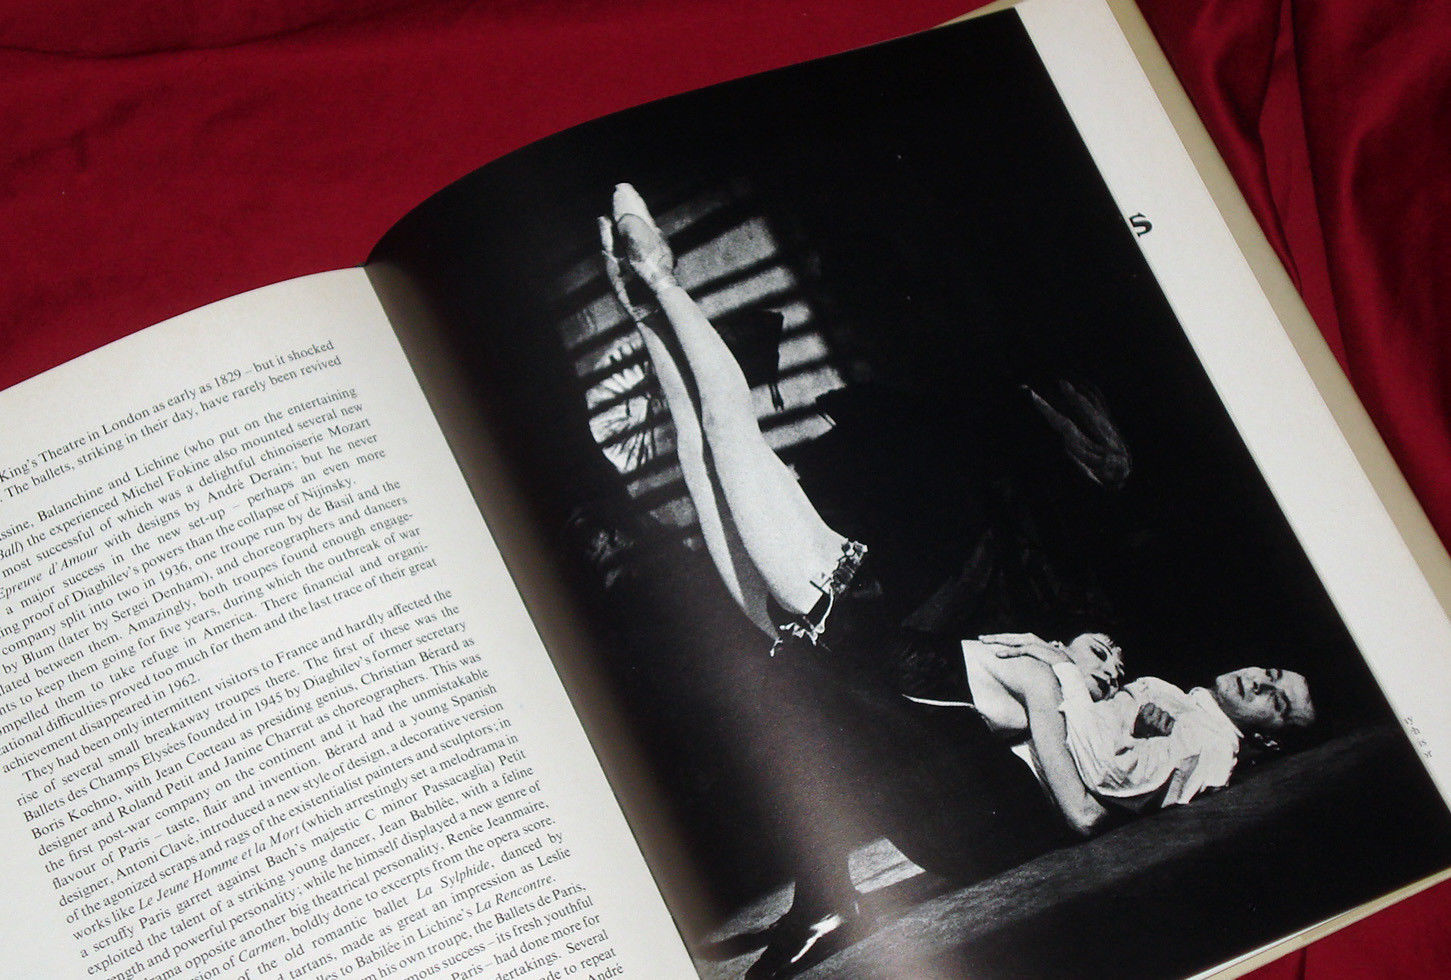 'History of Ballet and Dance in the Western World' by Bland -Very Good Condition image 3